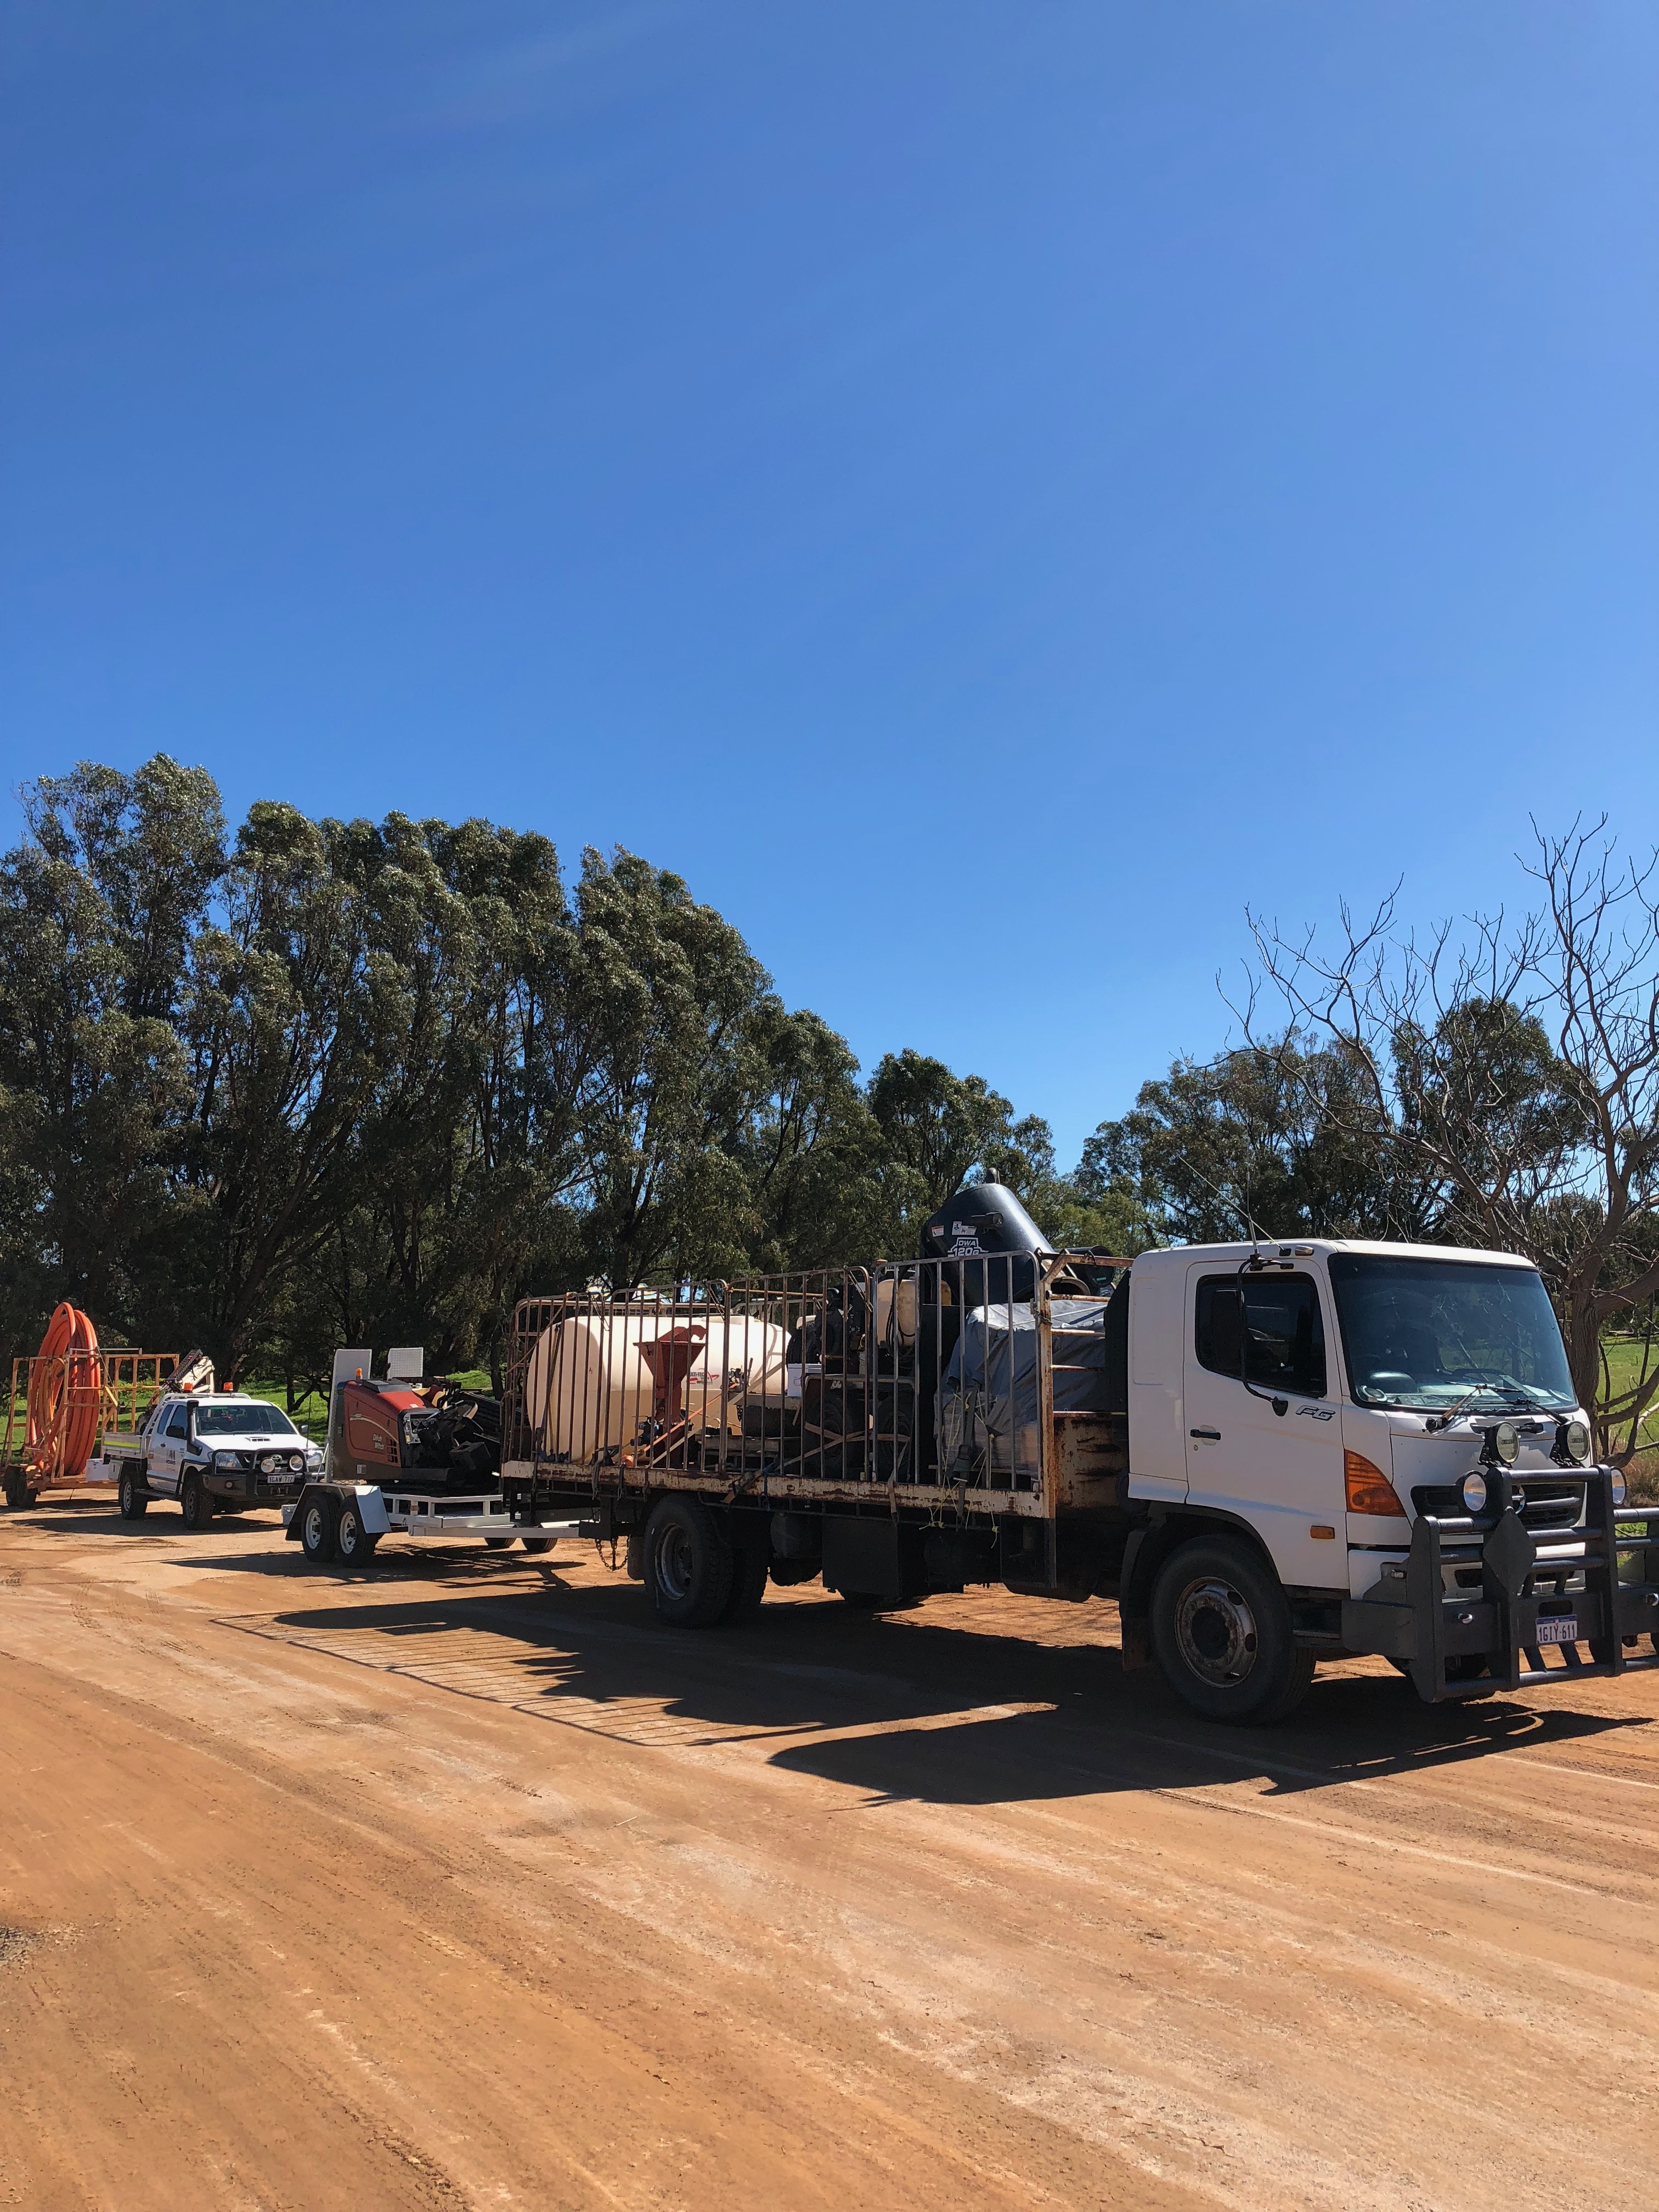 Morris Infrastructure Group Distribution Network UTE and Truck Perth, Western Australia